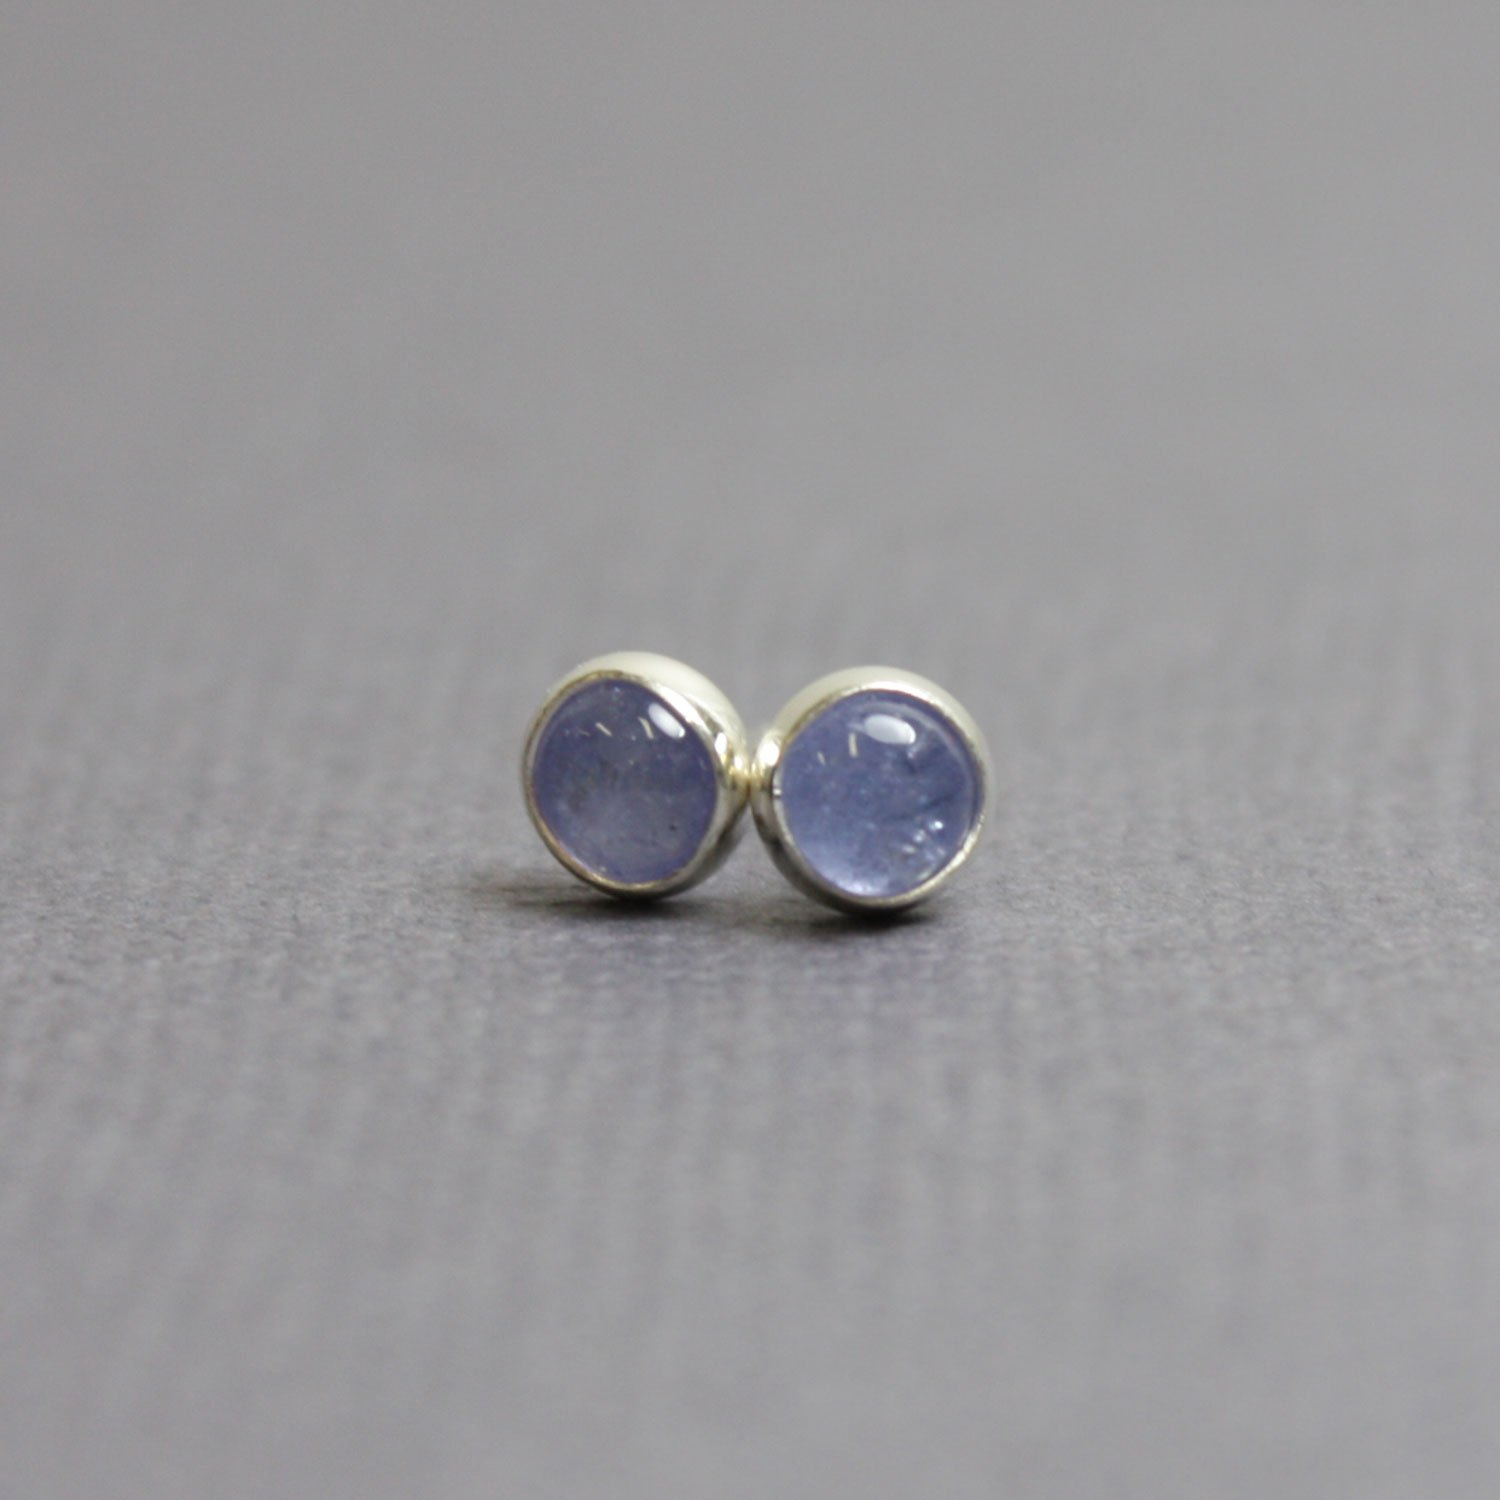 Tanzanite Stud Earrings-4mm Blue Post Earrings in all Sterling Silver-Handmade